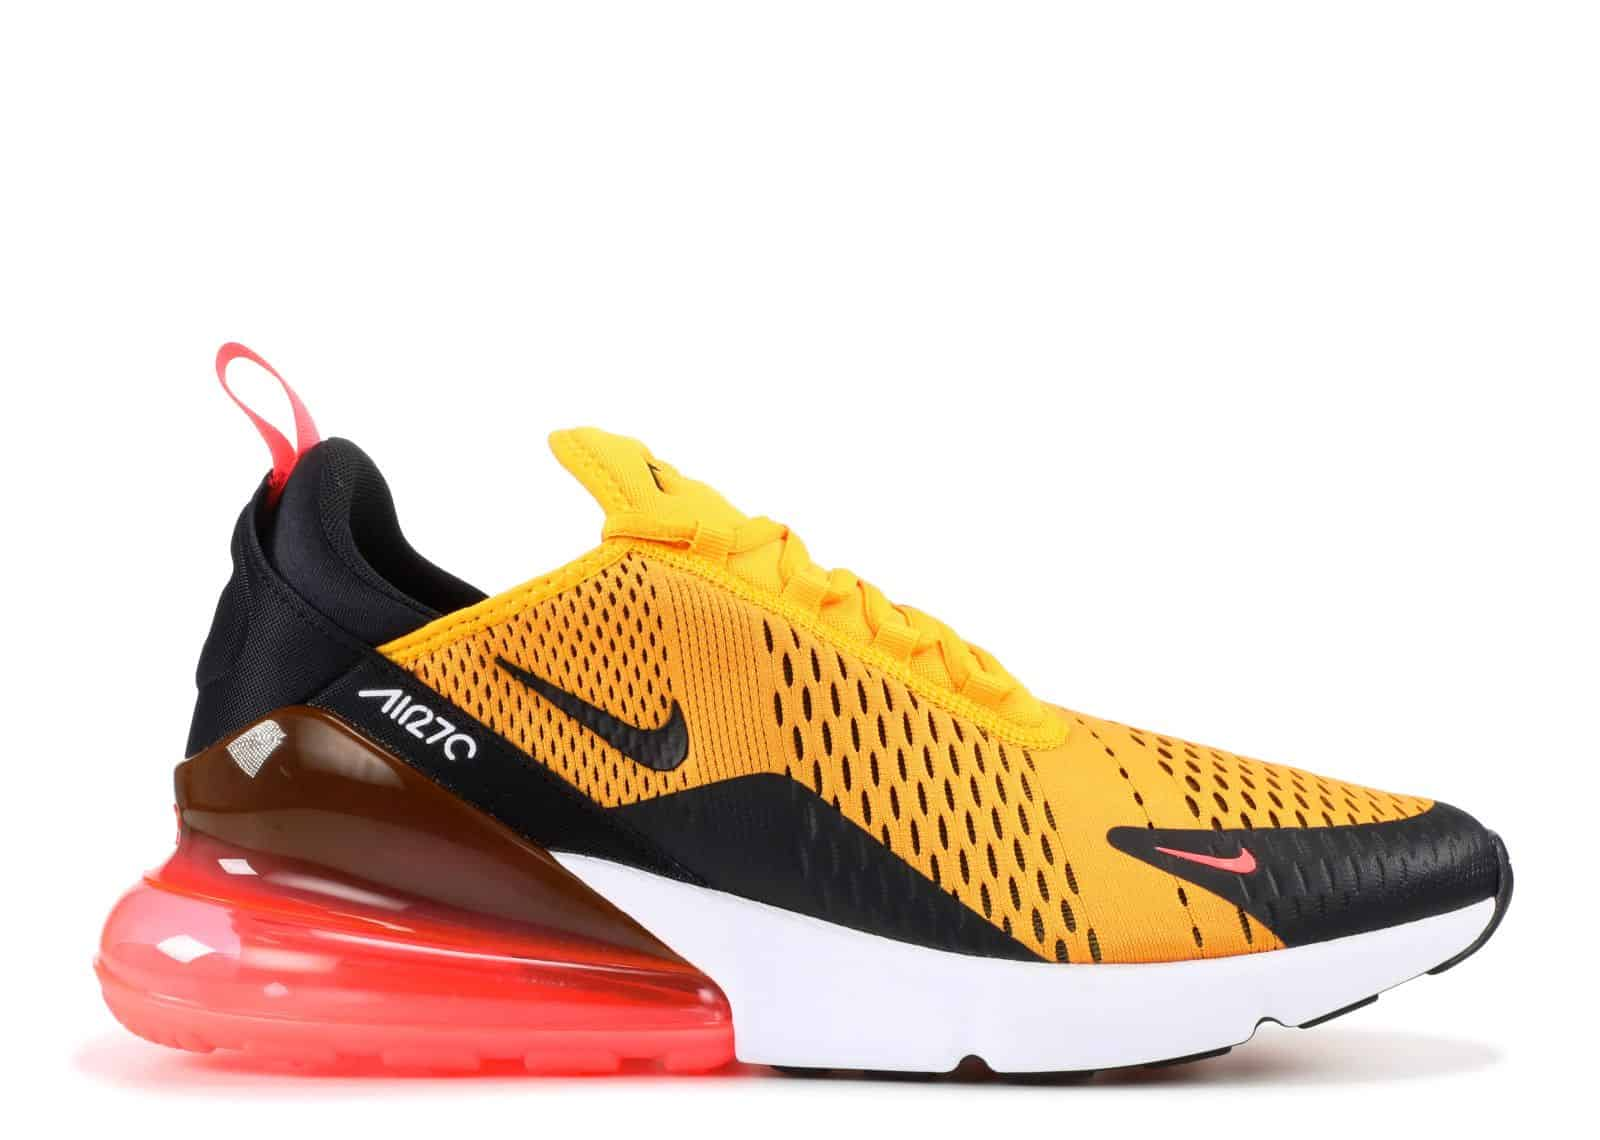 check out ac740 6df2a Biareview.com - Nike Air Max 270